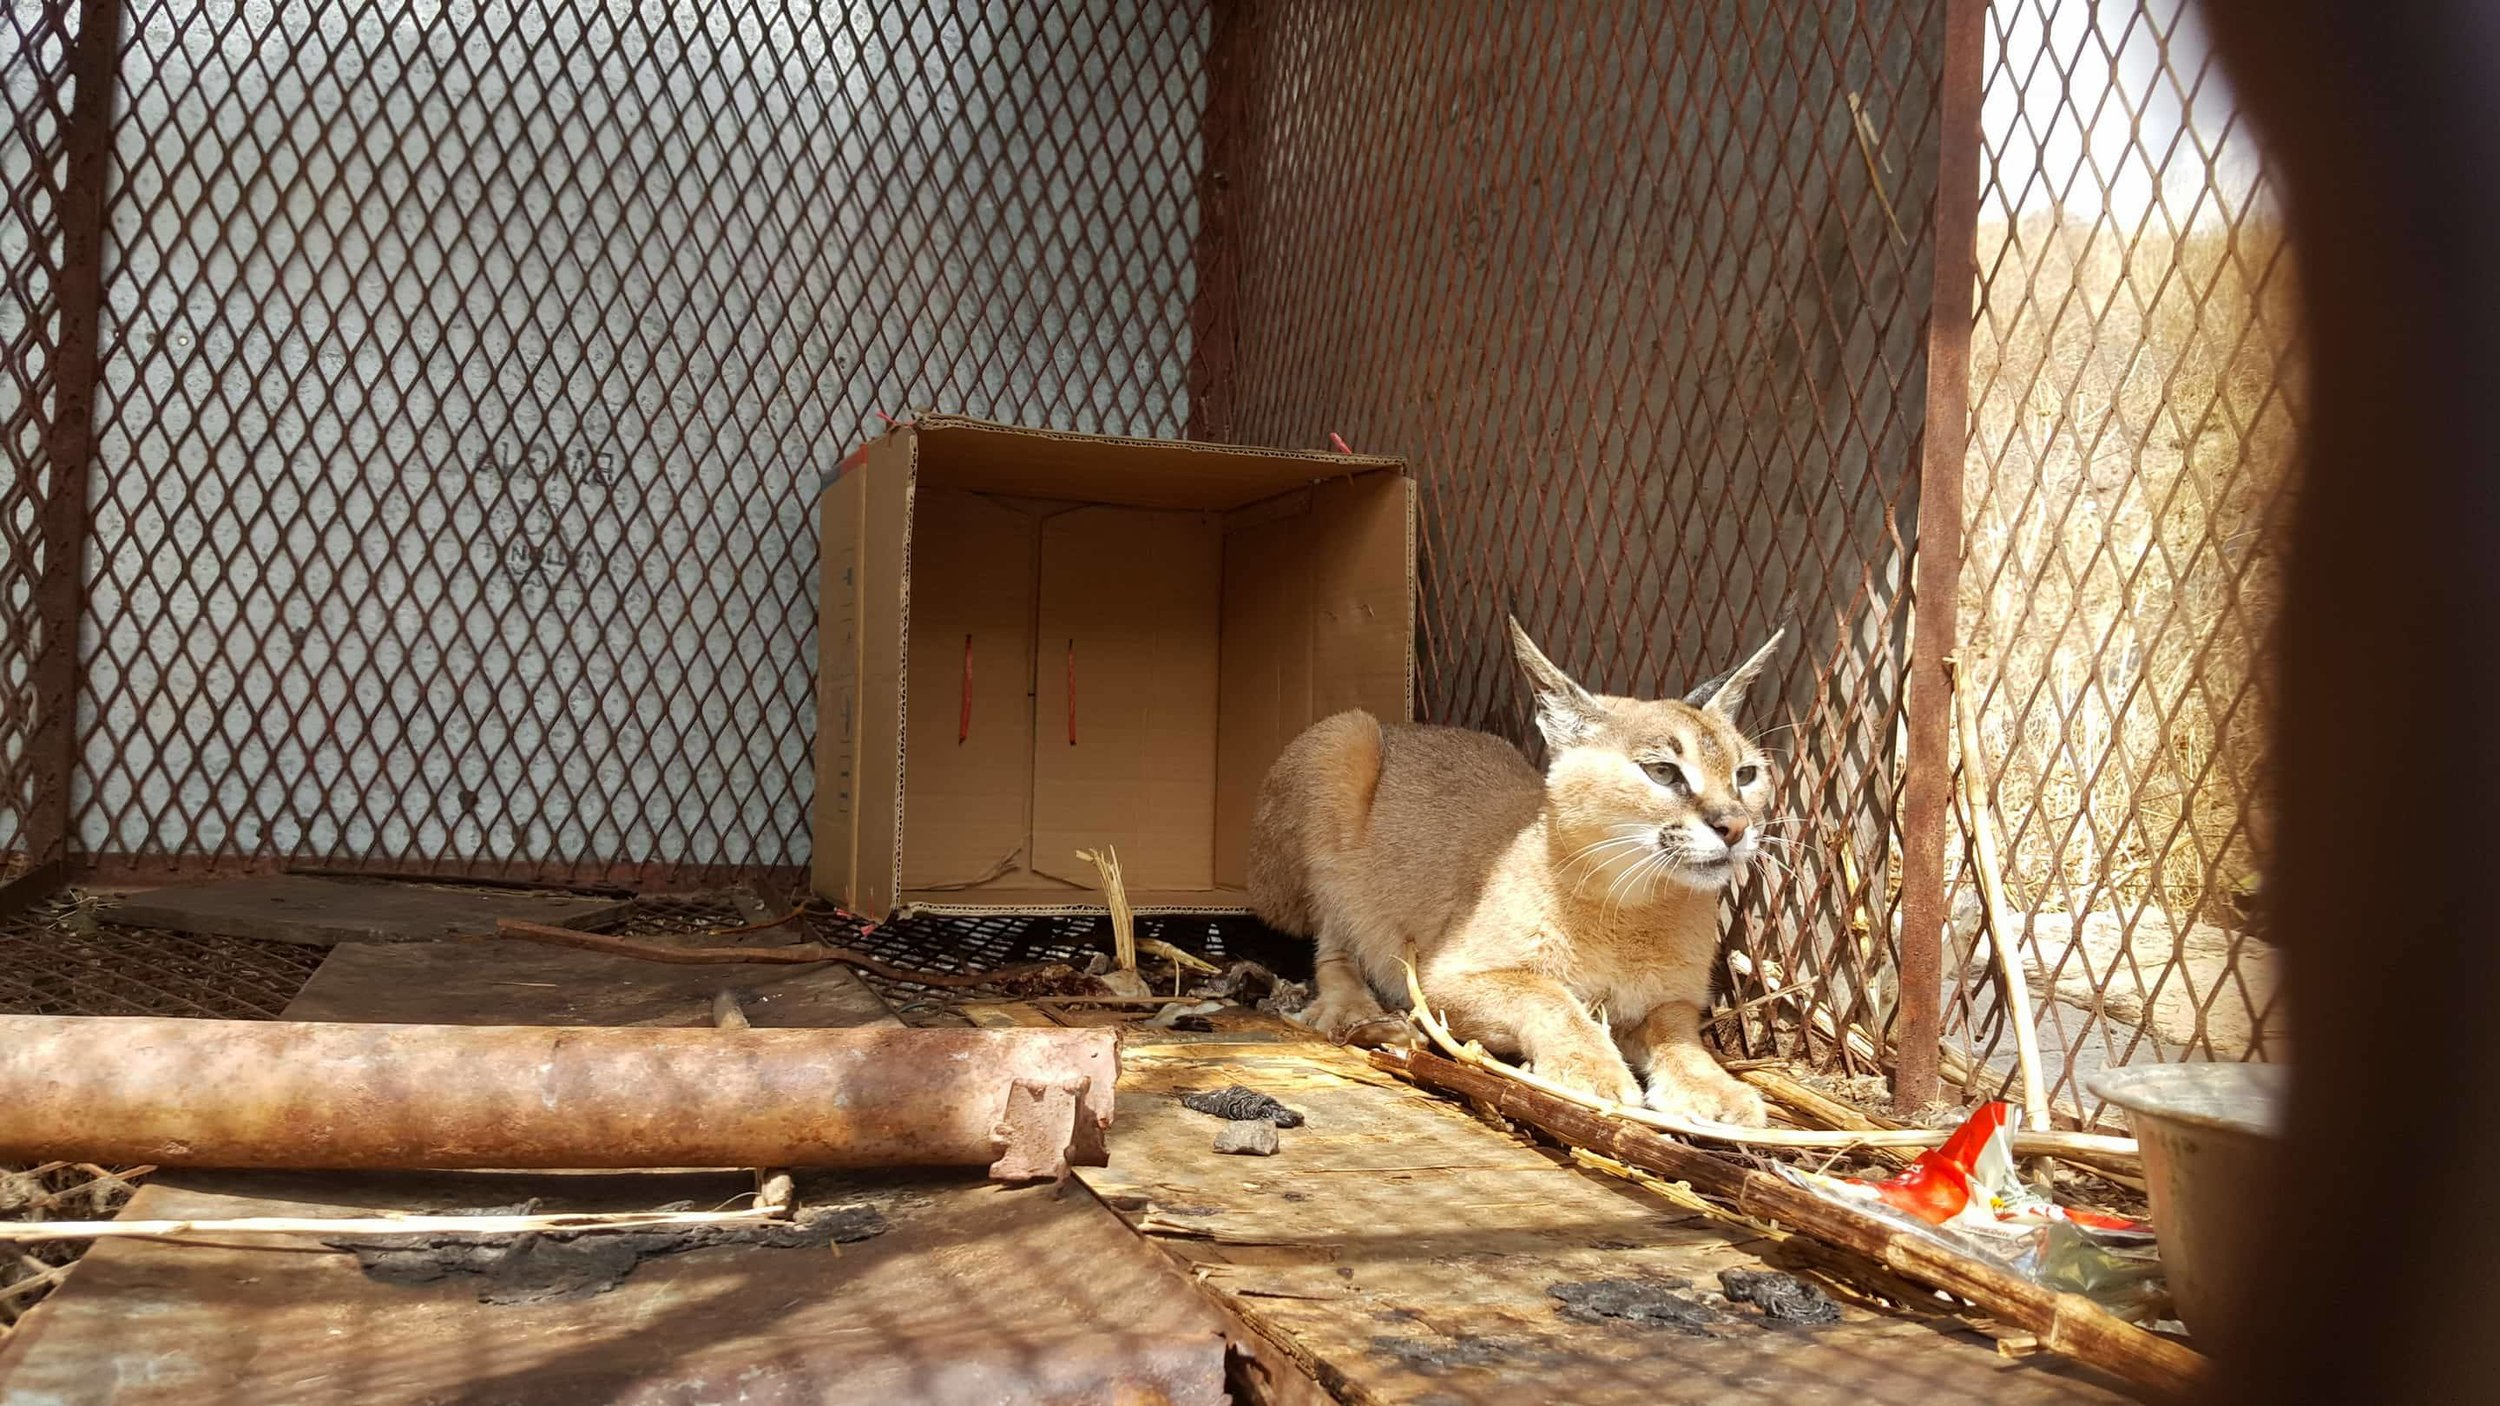 IBB ZOO RESCUE OWAP AR  provides box bed and food for arabian caracal 8 MARCH 2018 .jpg